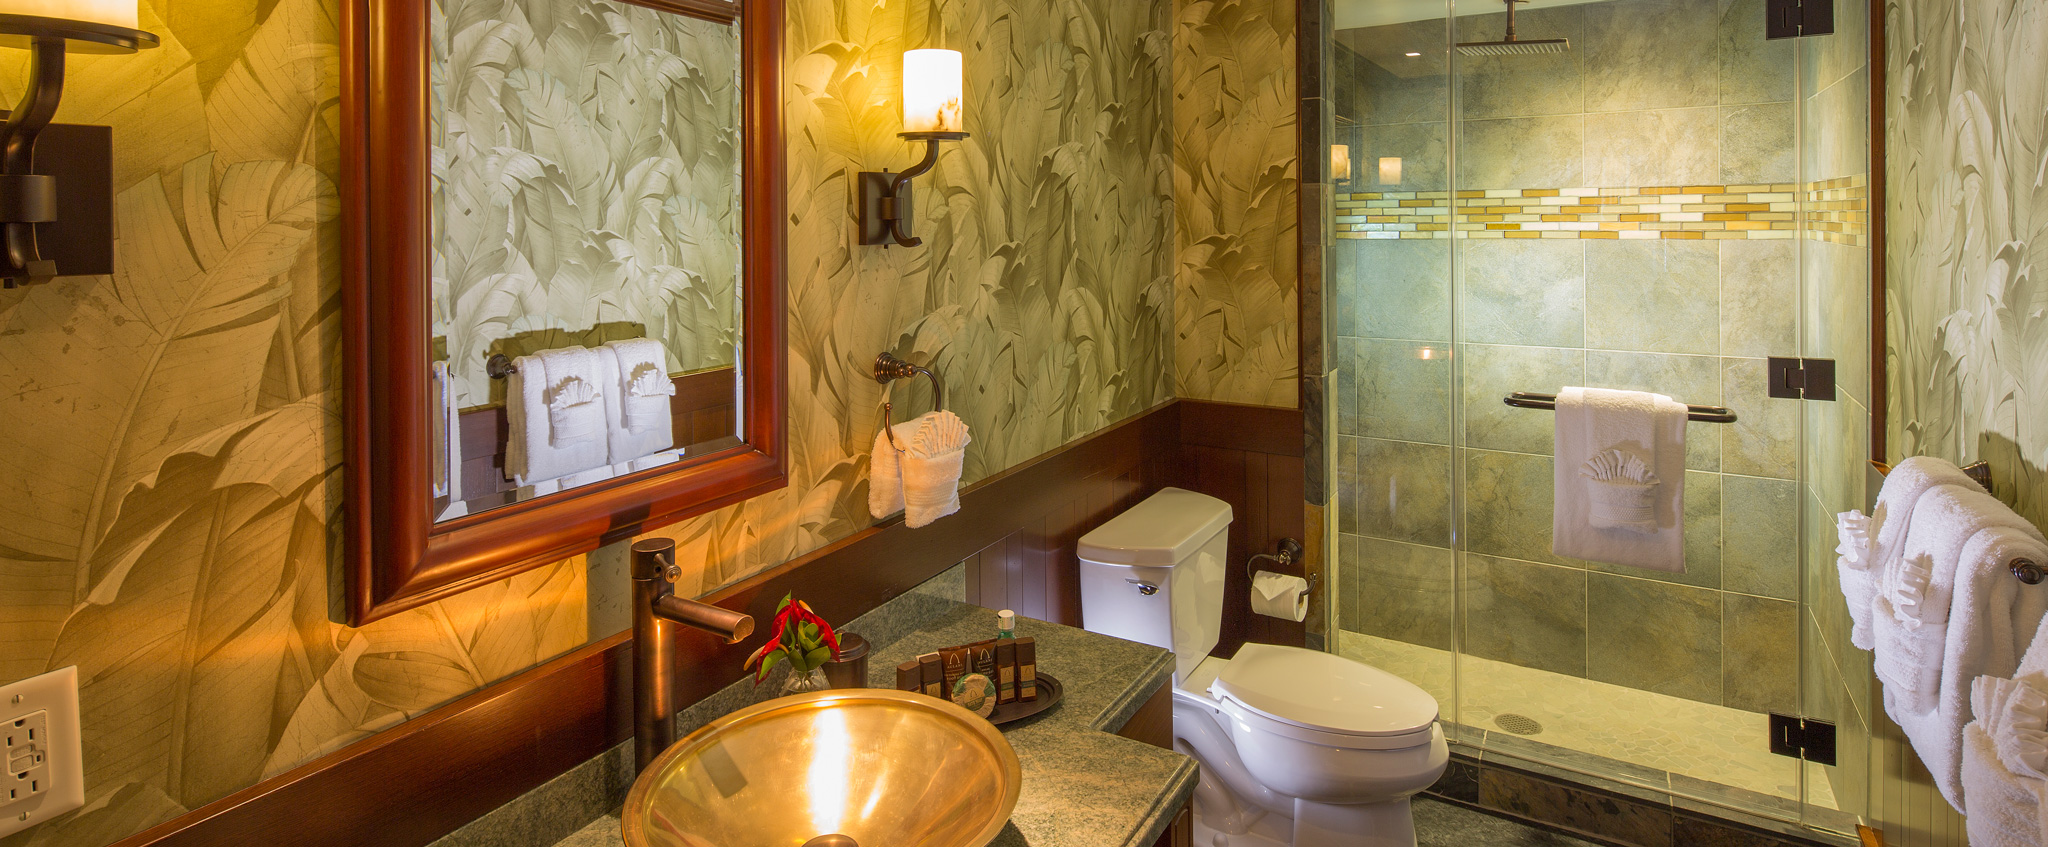 A bathroom in a 2-Bedroom Suite features palm tree wallpaper, walk-in shower, a toilet and a sink console